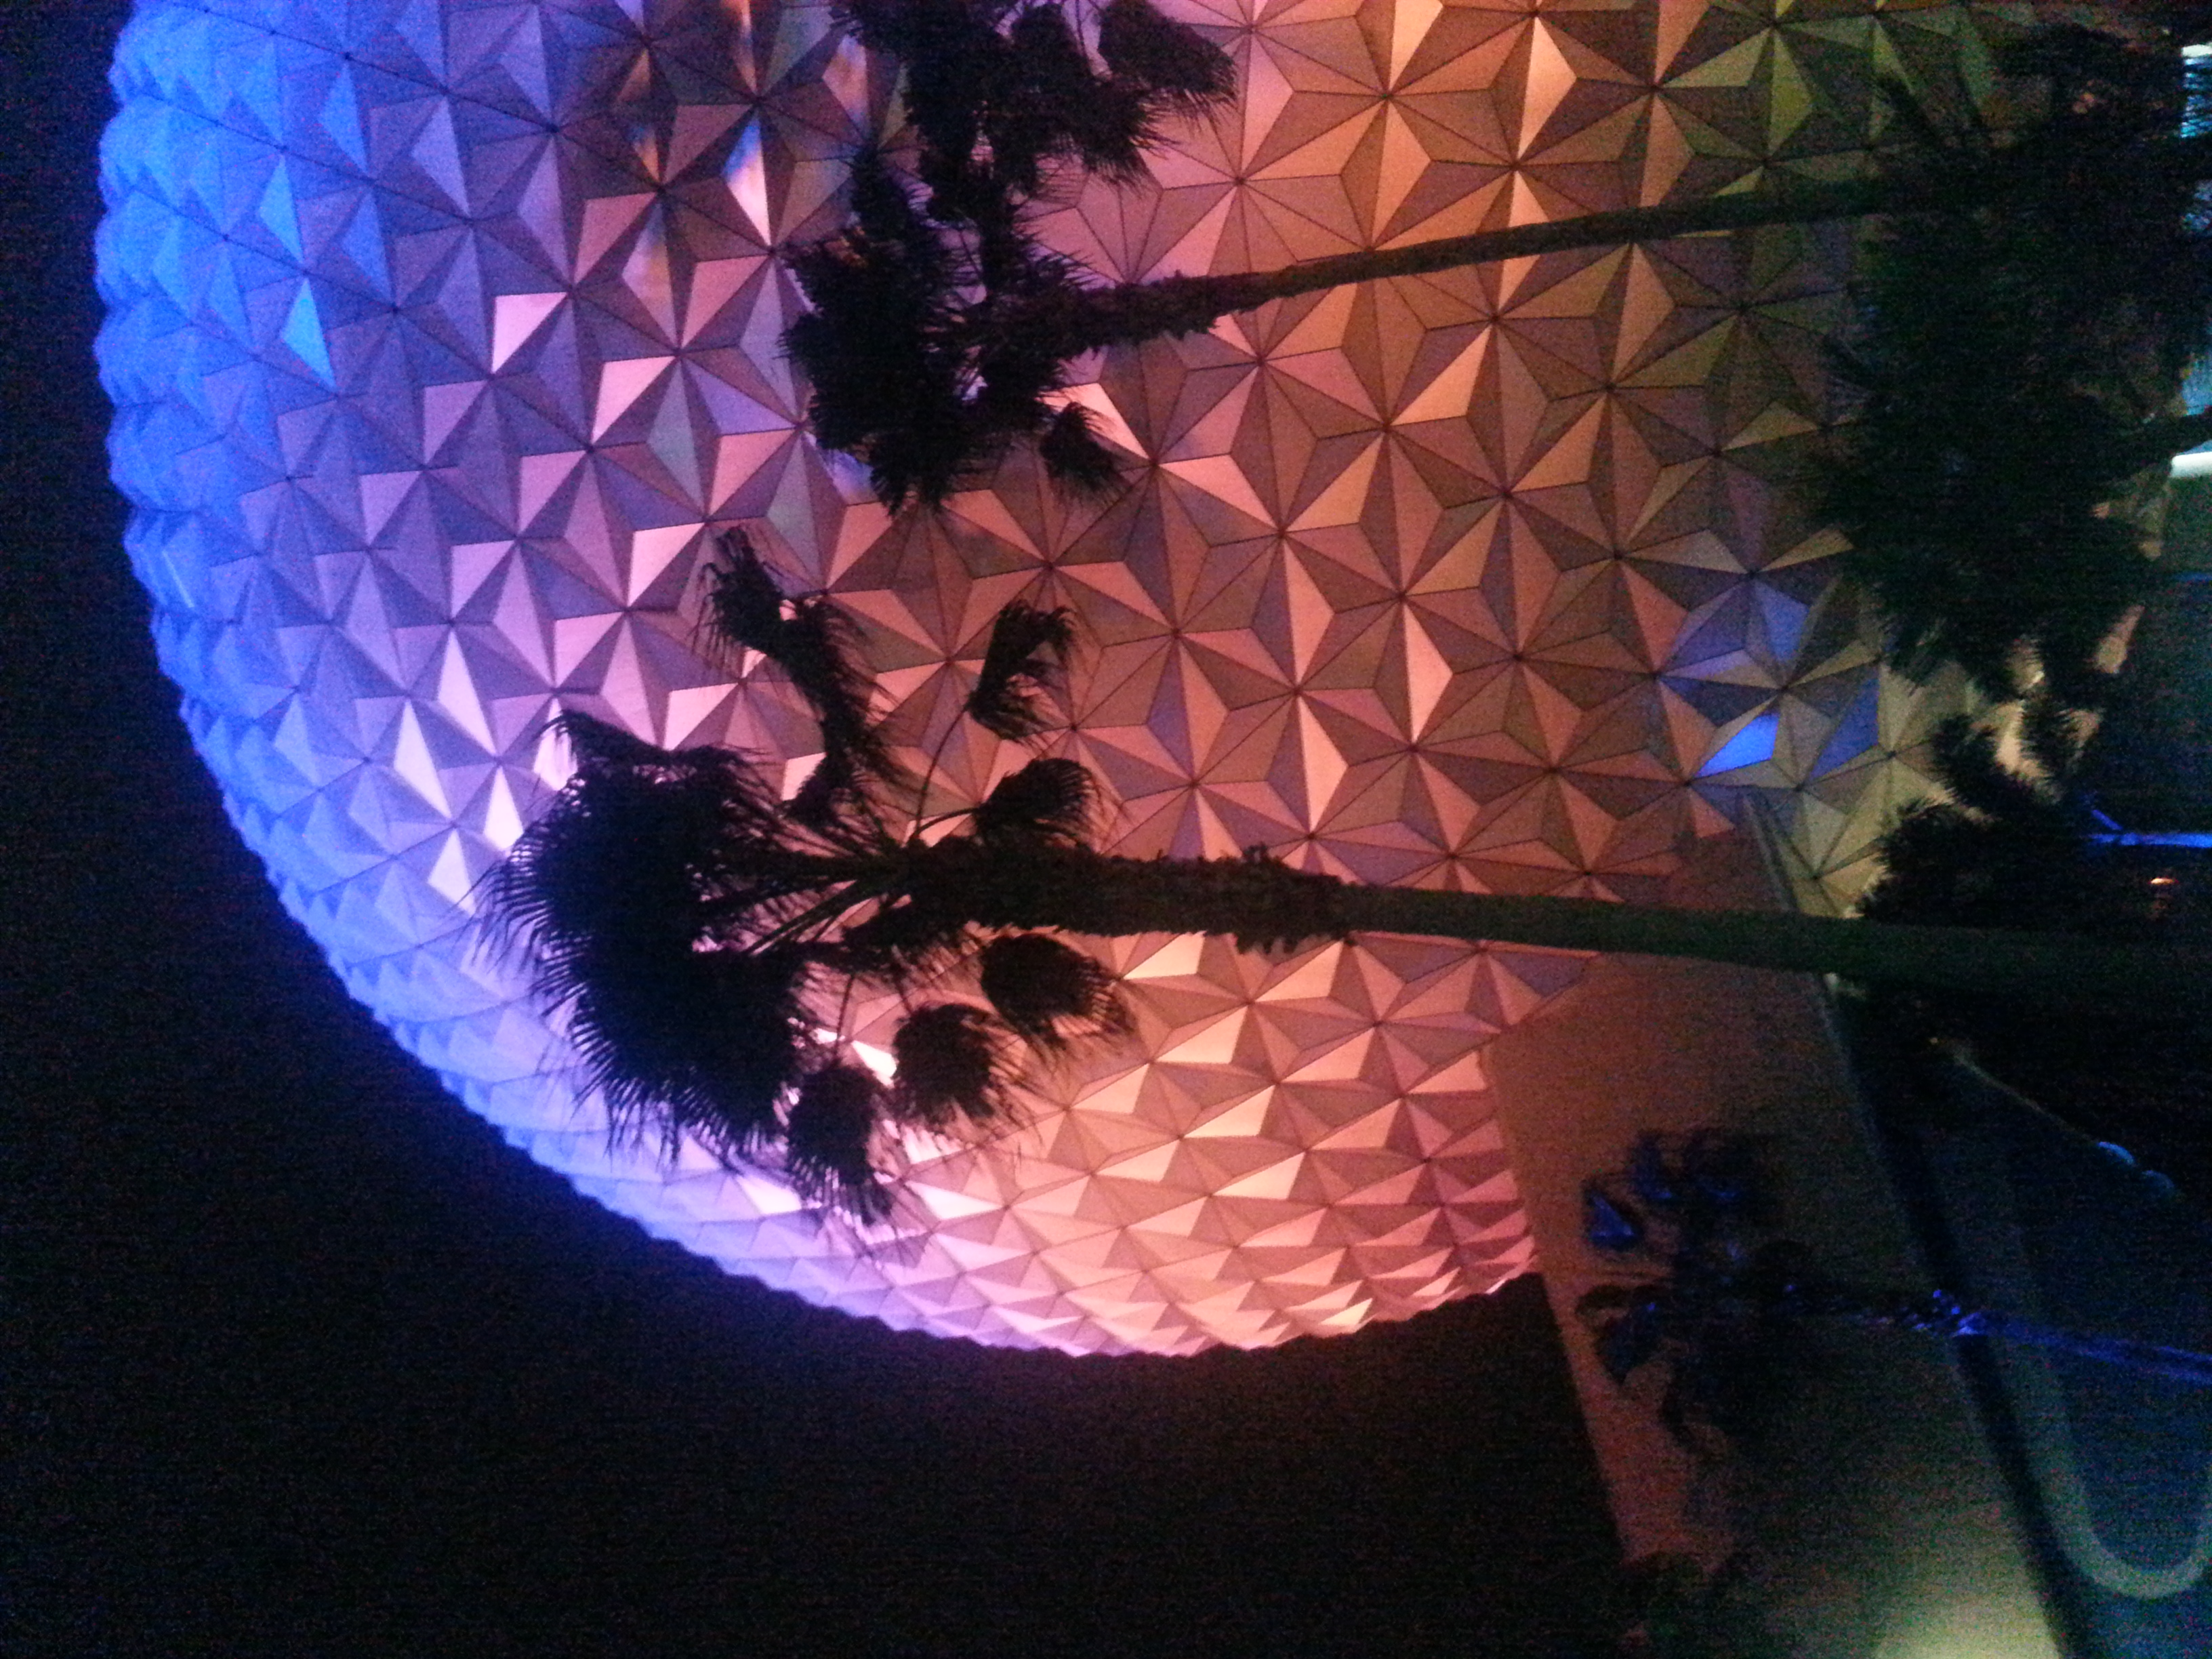 Terrific Tuesdays: Spaceship Earth